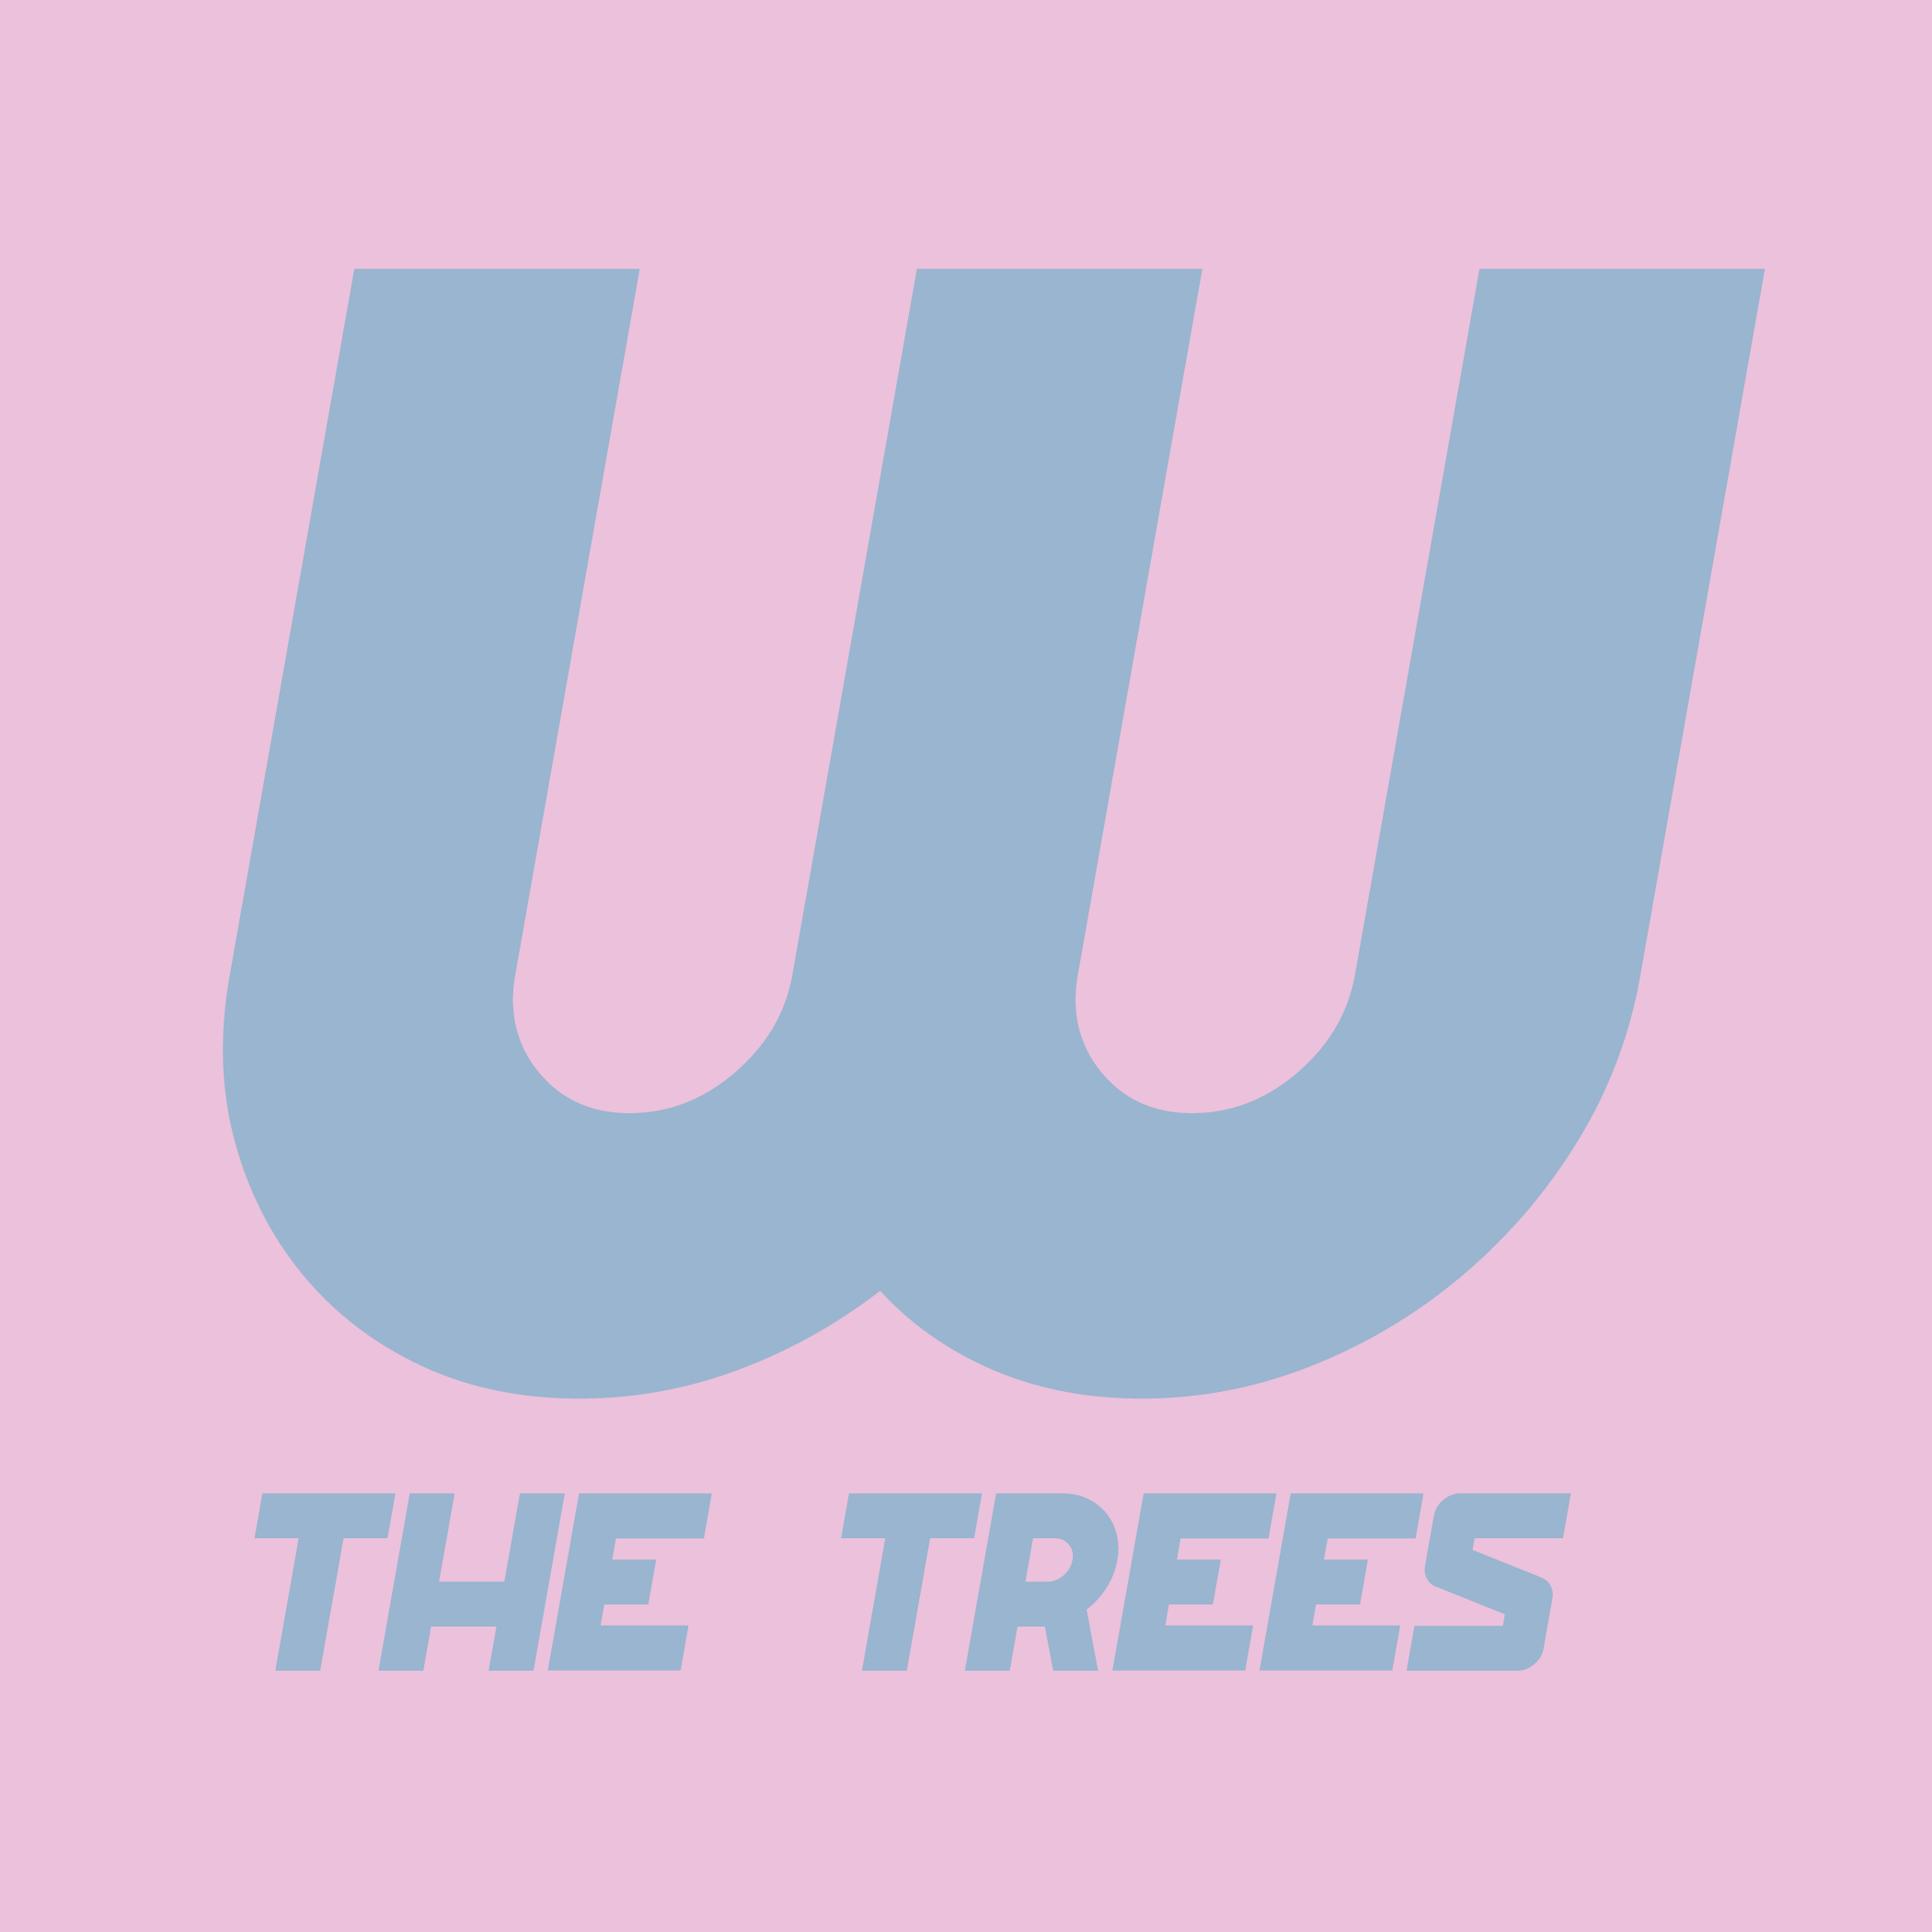 wthetrees pinkblue.png